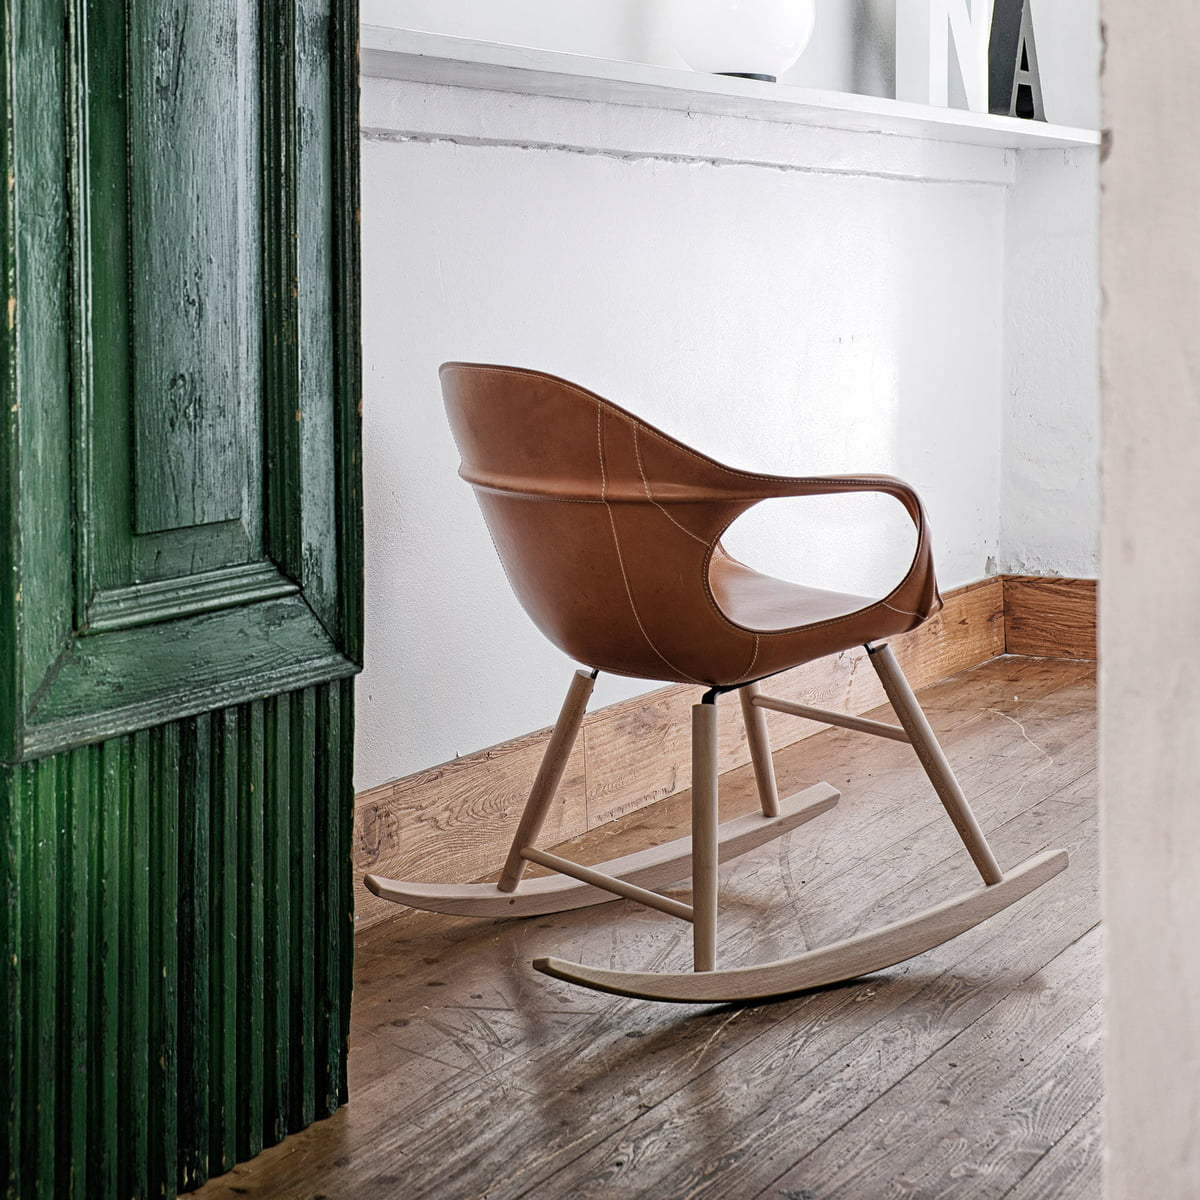 Elephant rocking chair by kristalia at the shop for Rocking chair schaukelstuhl